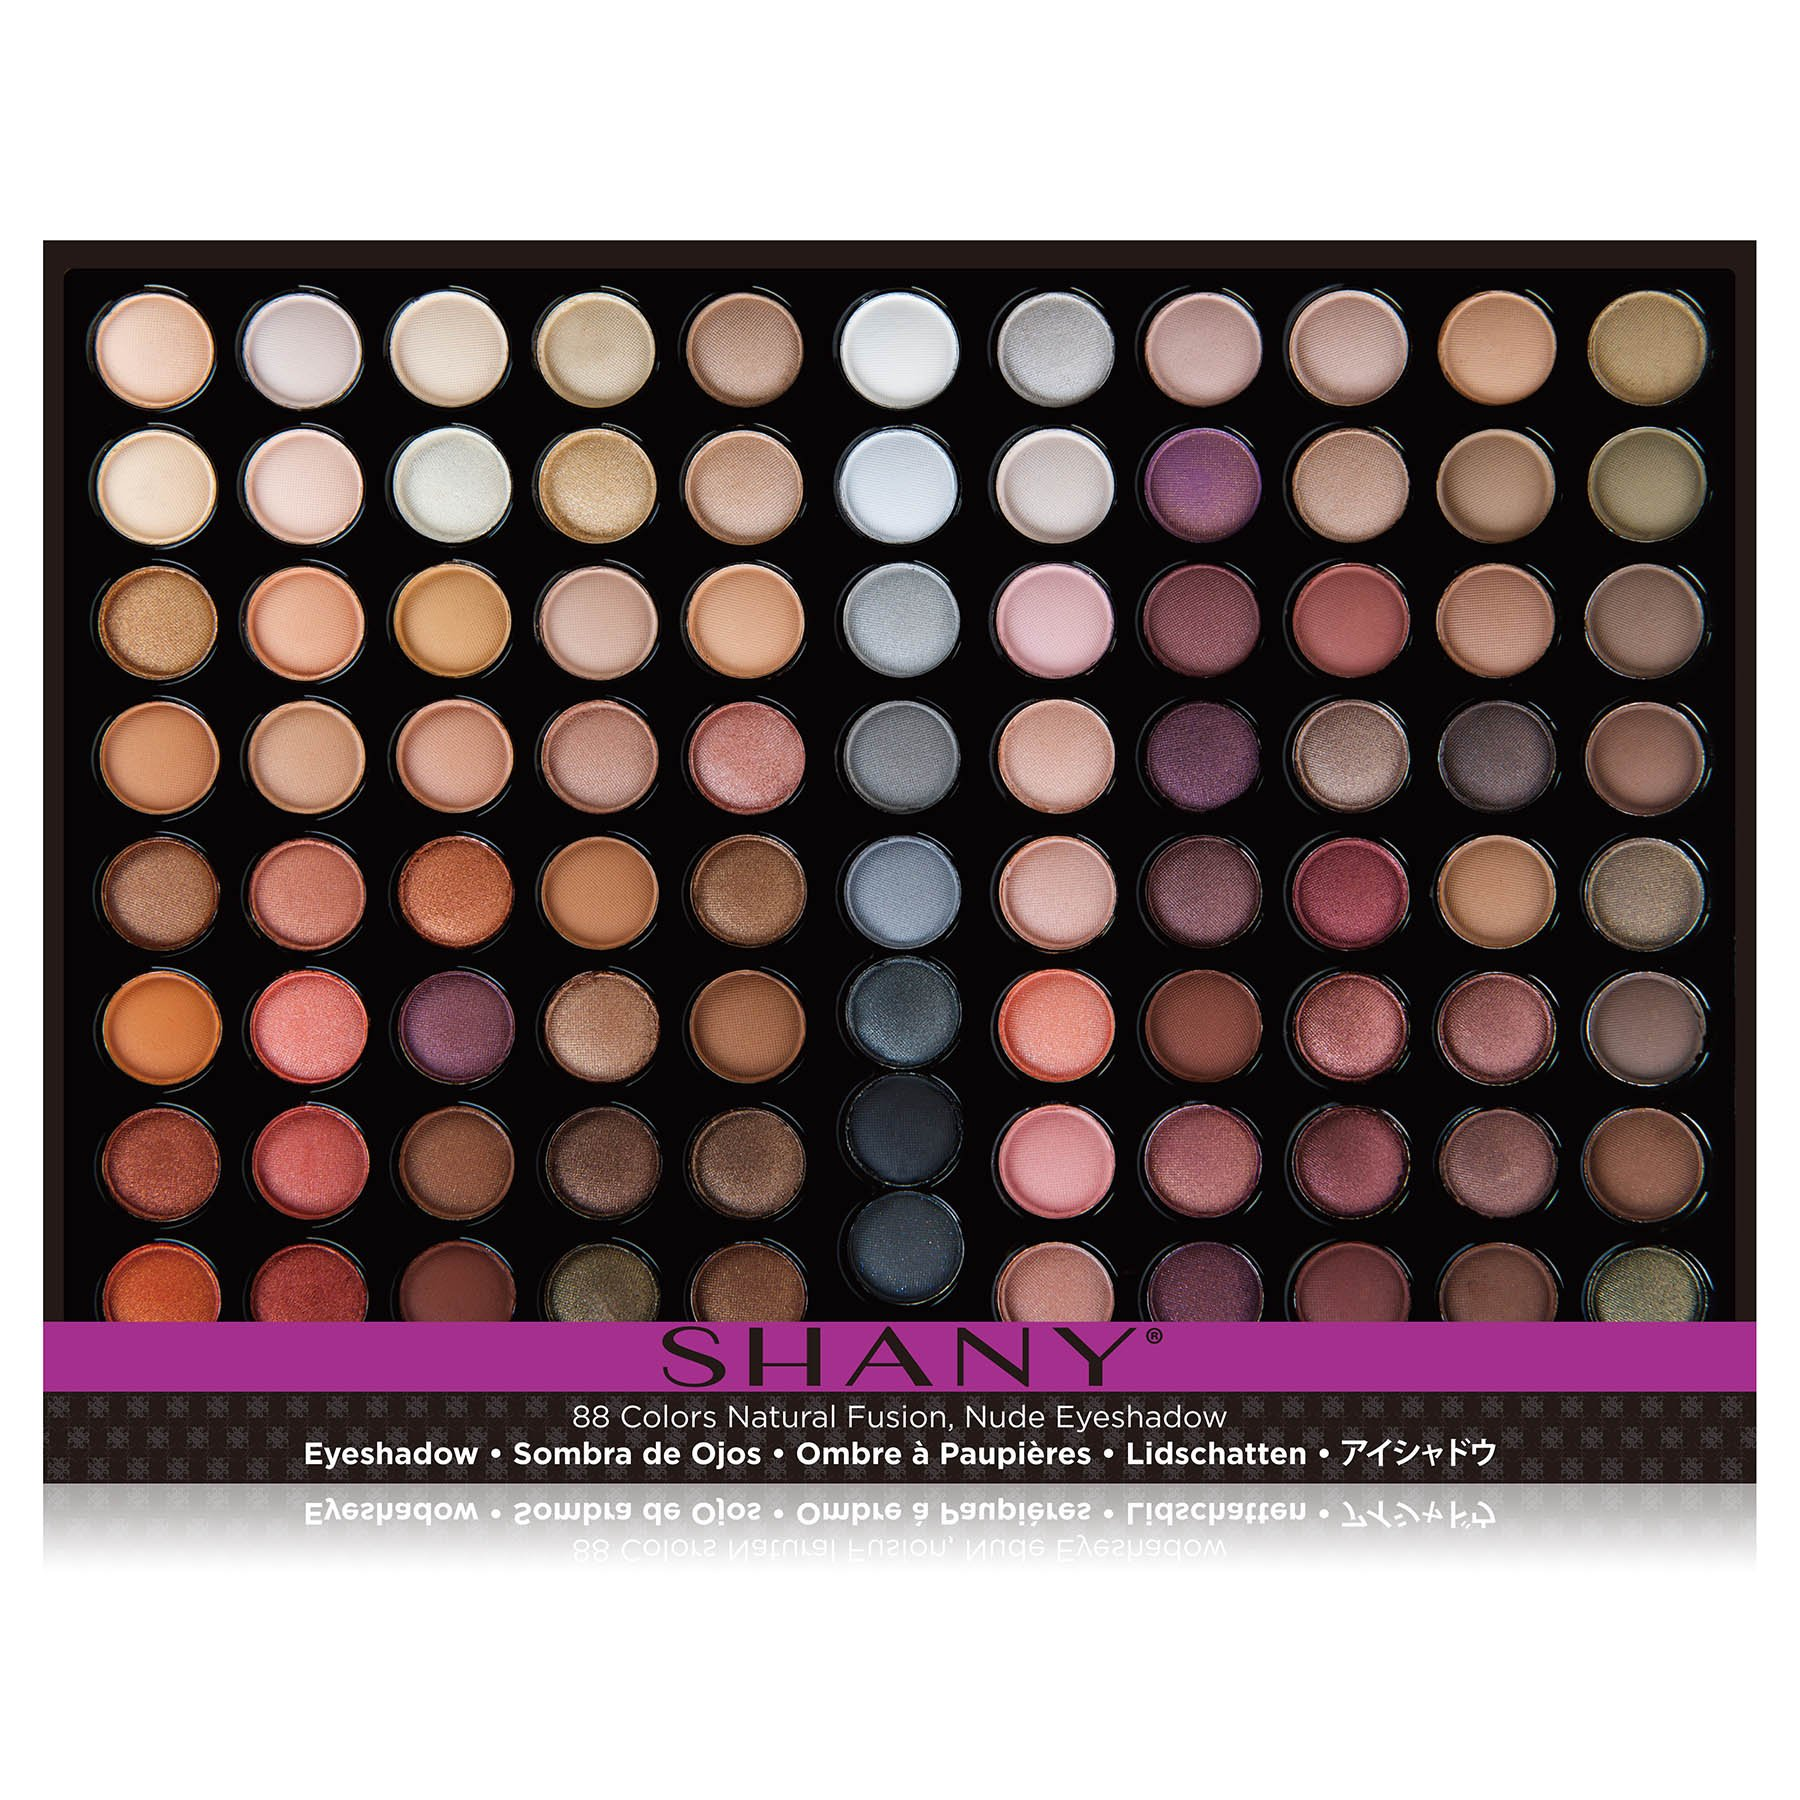 SHANY Natural Fusion Eyeshadow Palette (88 Color Eyeshadow Palette, Nude Palette), 2.15 Ounce by SHANY Cosmetics (Image #3)